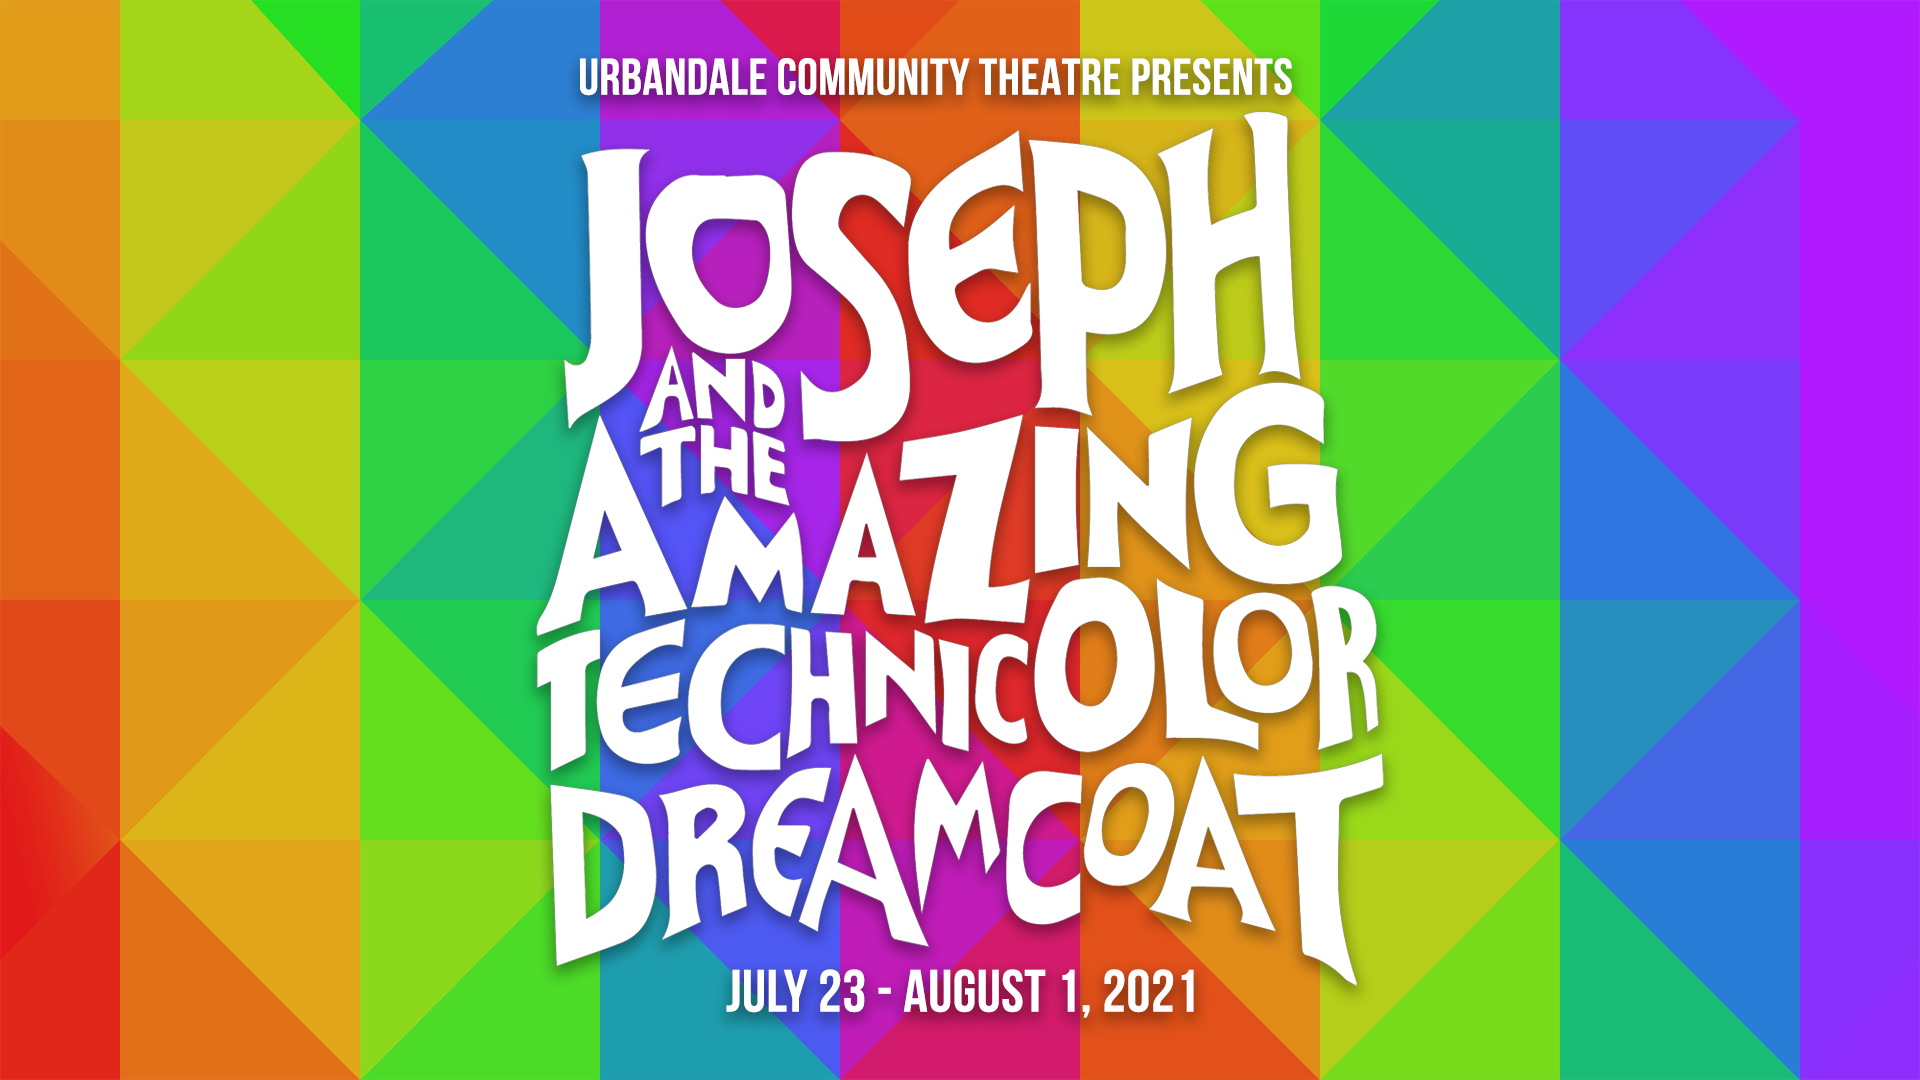 Urbandale Community Theatre Presents Joseph and the Amazing Technicolor Dreamcoat 2021 Logo on Background Social